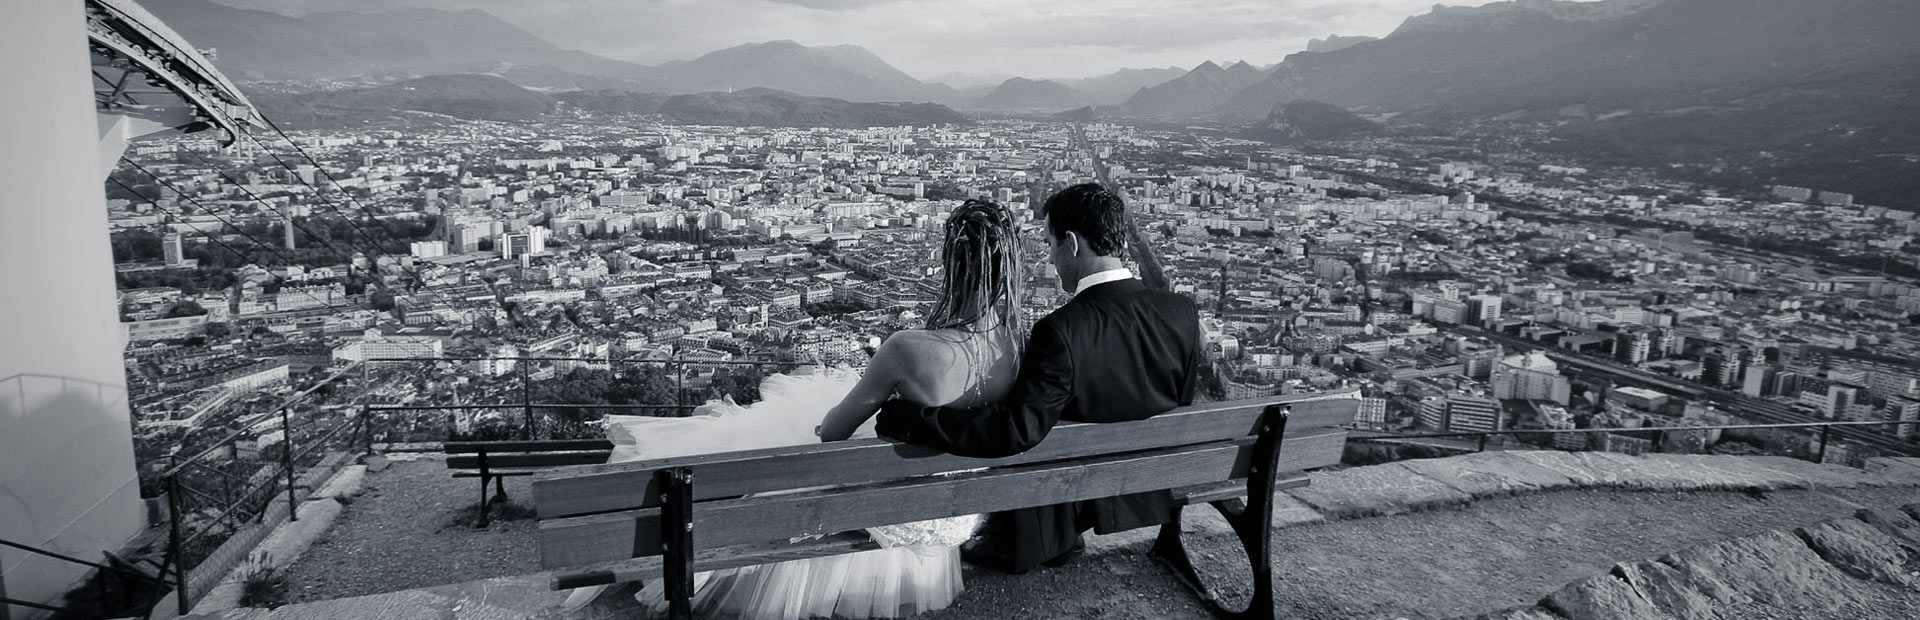 https://bastille-grenoble.fr/wp/wp-content/uploads/2019/01/slider_mariage.jpg